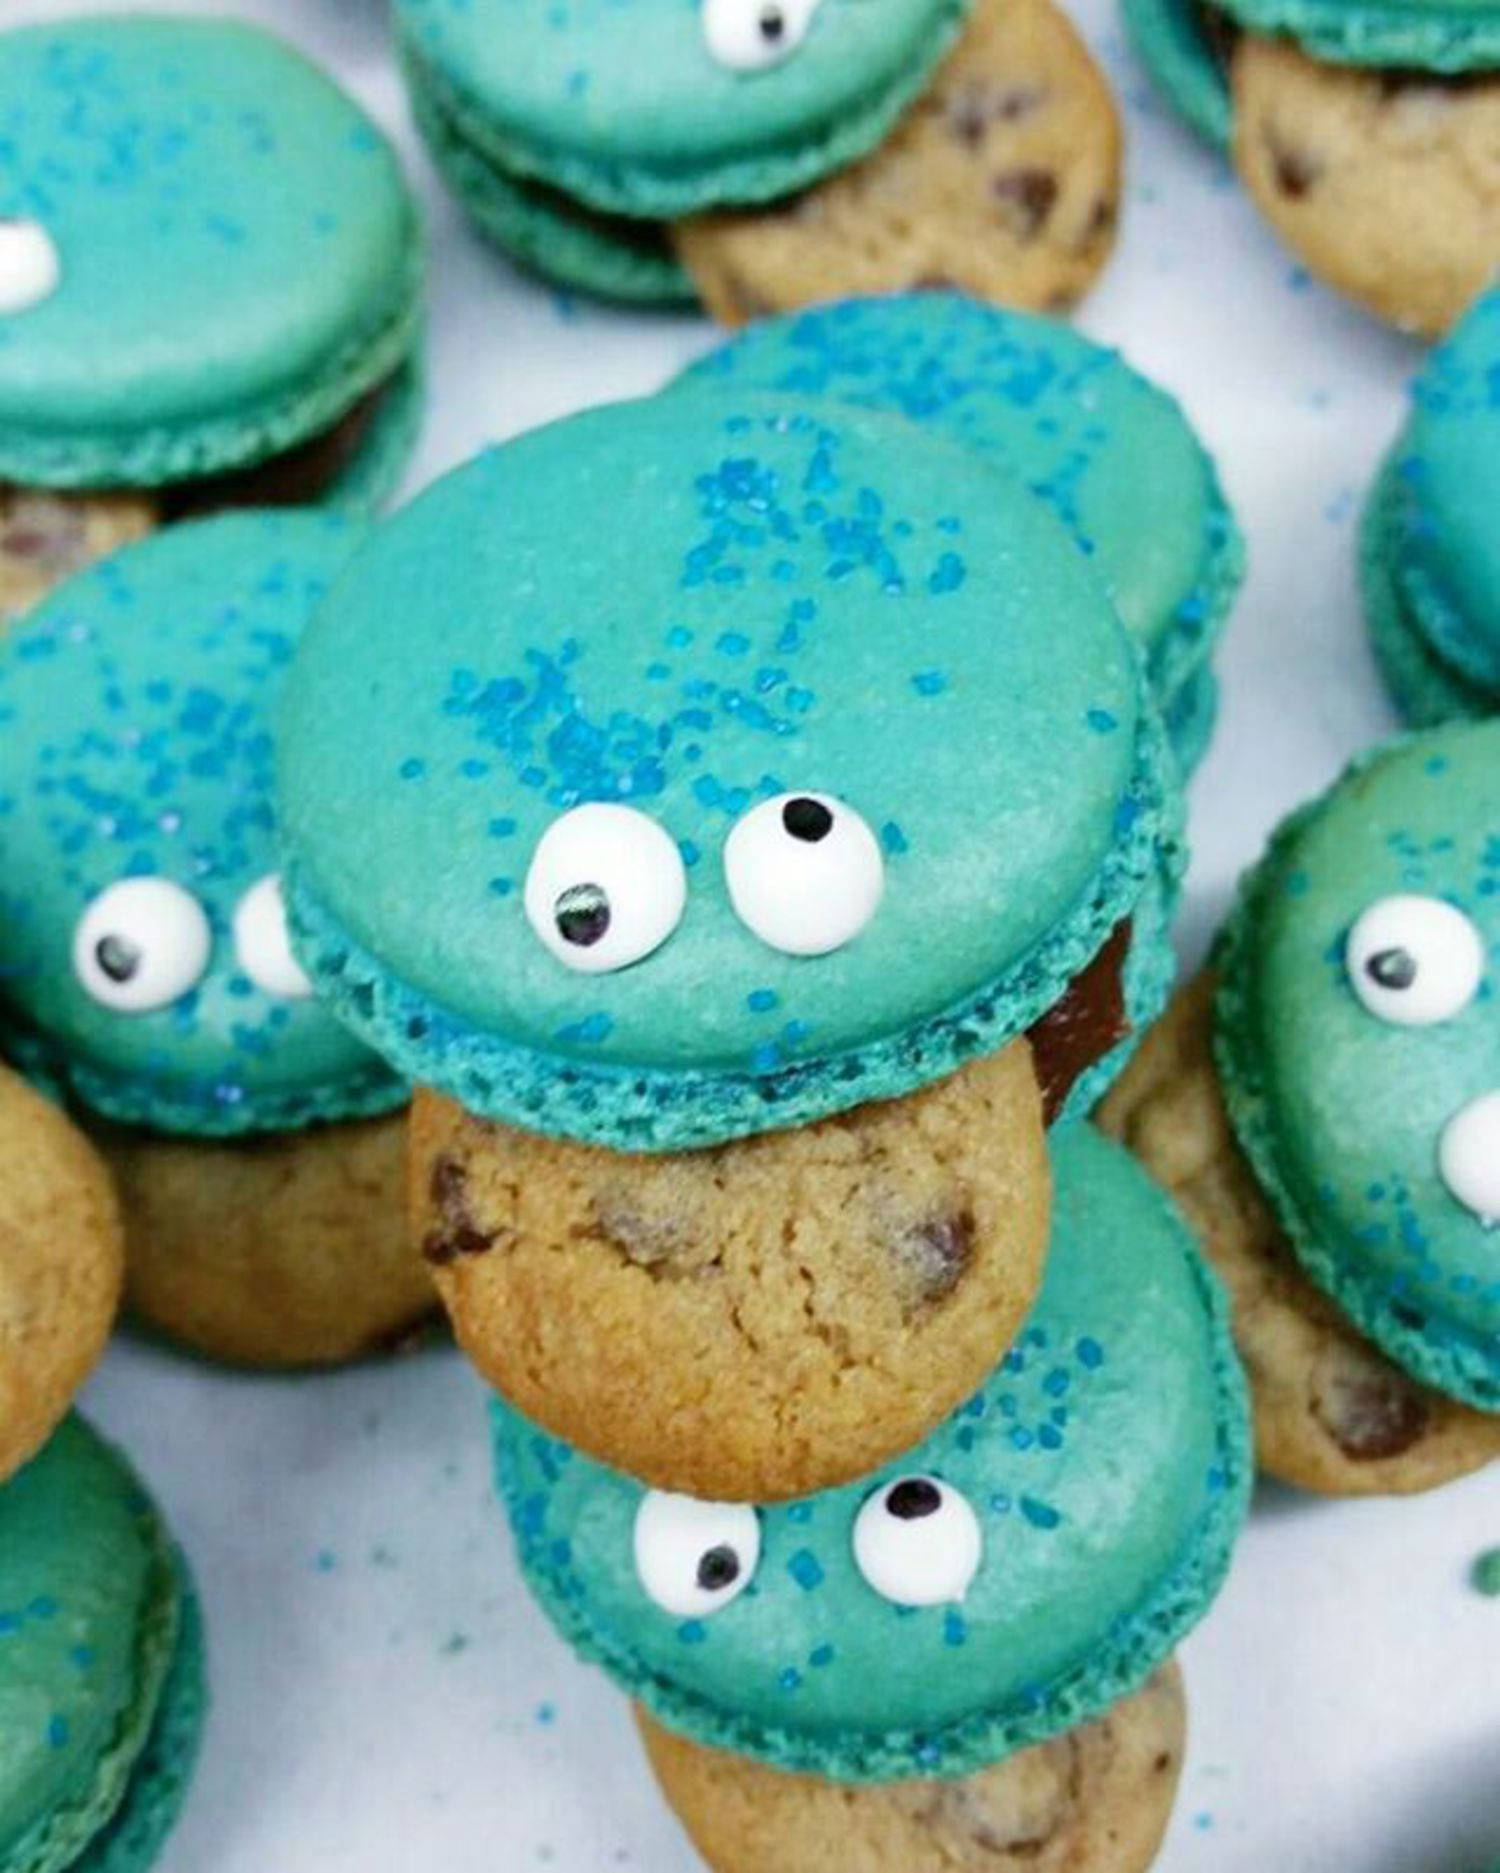 We have a Cookie Monster invasion coming to Macaron Parlour this Sunday March 20 in honor of Macaron Day!! 👐🍪 & complete with a miniature version of our delicious chocolate chip cookie! These cuties will be for sale and a portion of the proceeds will go directly to City Harvest. Learn more about Macaron Day from the link in our bio 😊  #cookiemonster #cookies #tgif #macaronday #macarons #dessert #nycevents #eeeeeats #thefeedfeed #tasty #cisforcookie